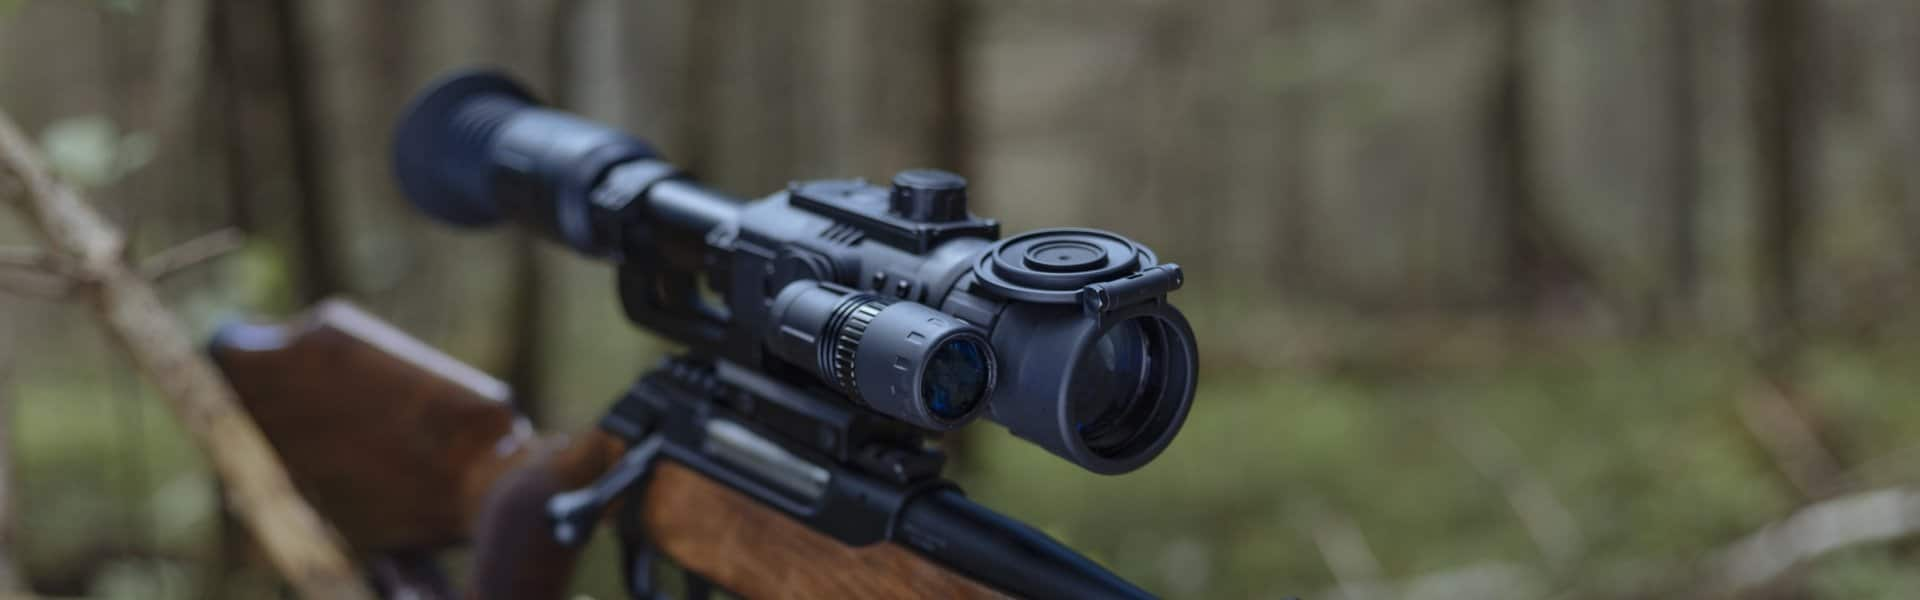 Best Night Vision Scopes Under $1000 Reviewed in Detail